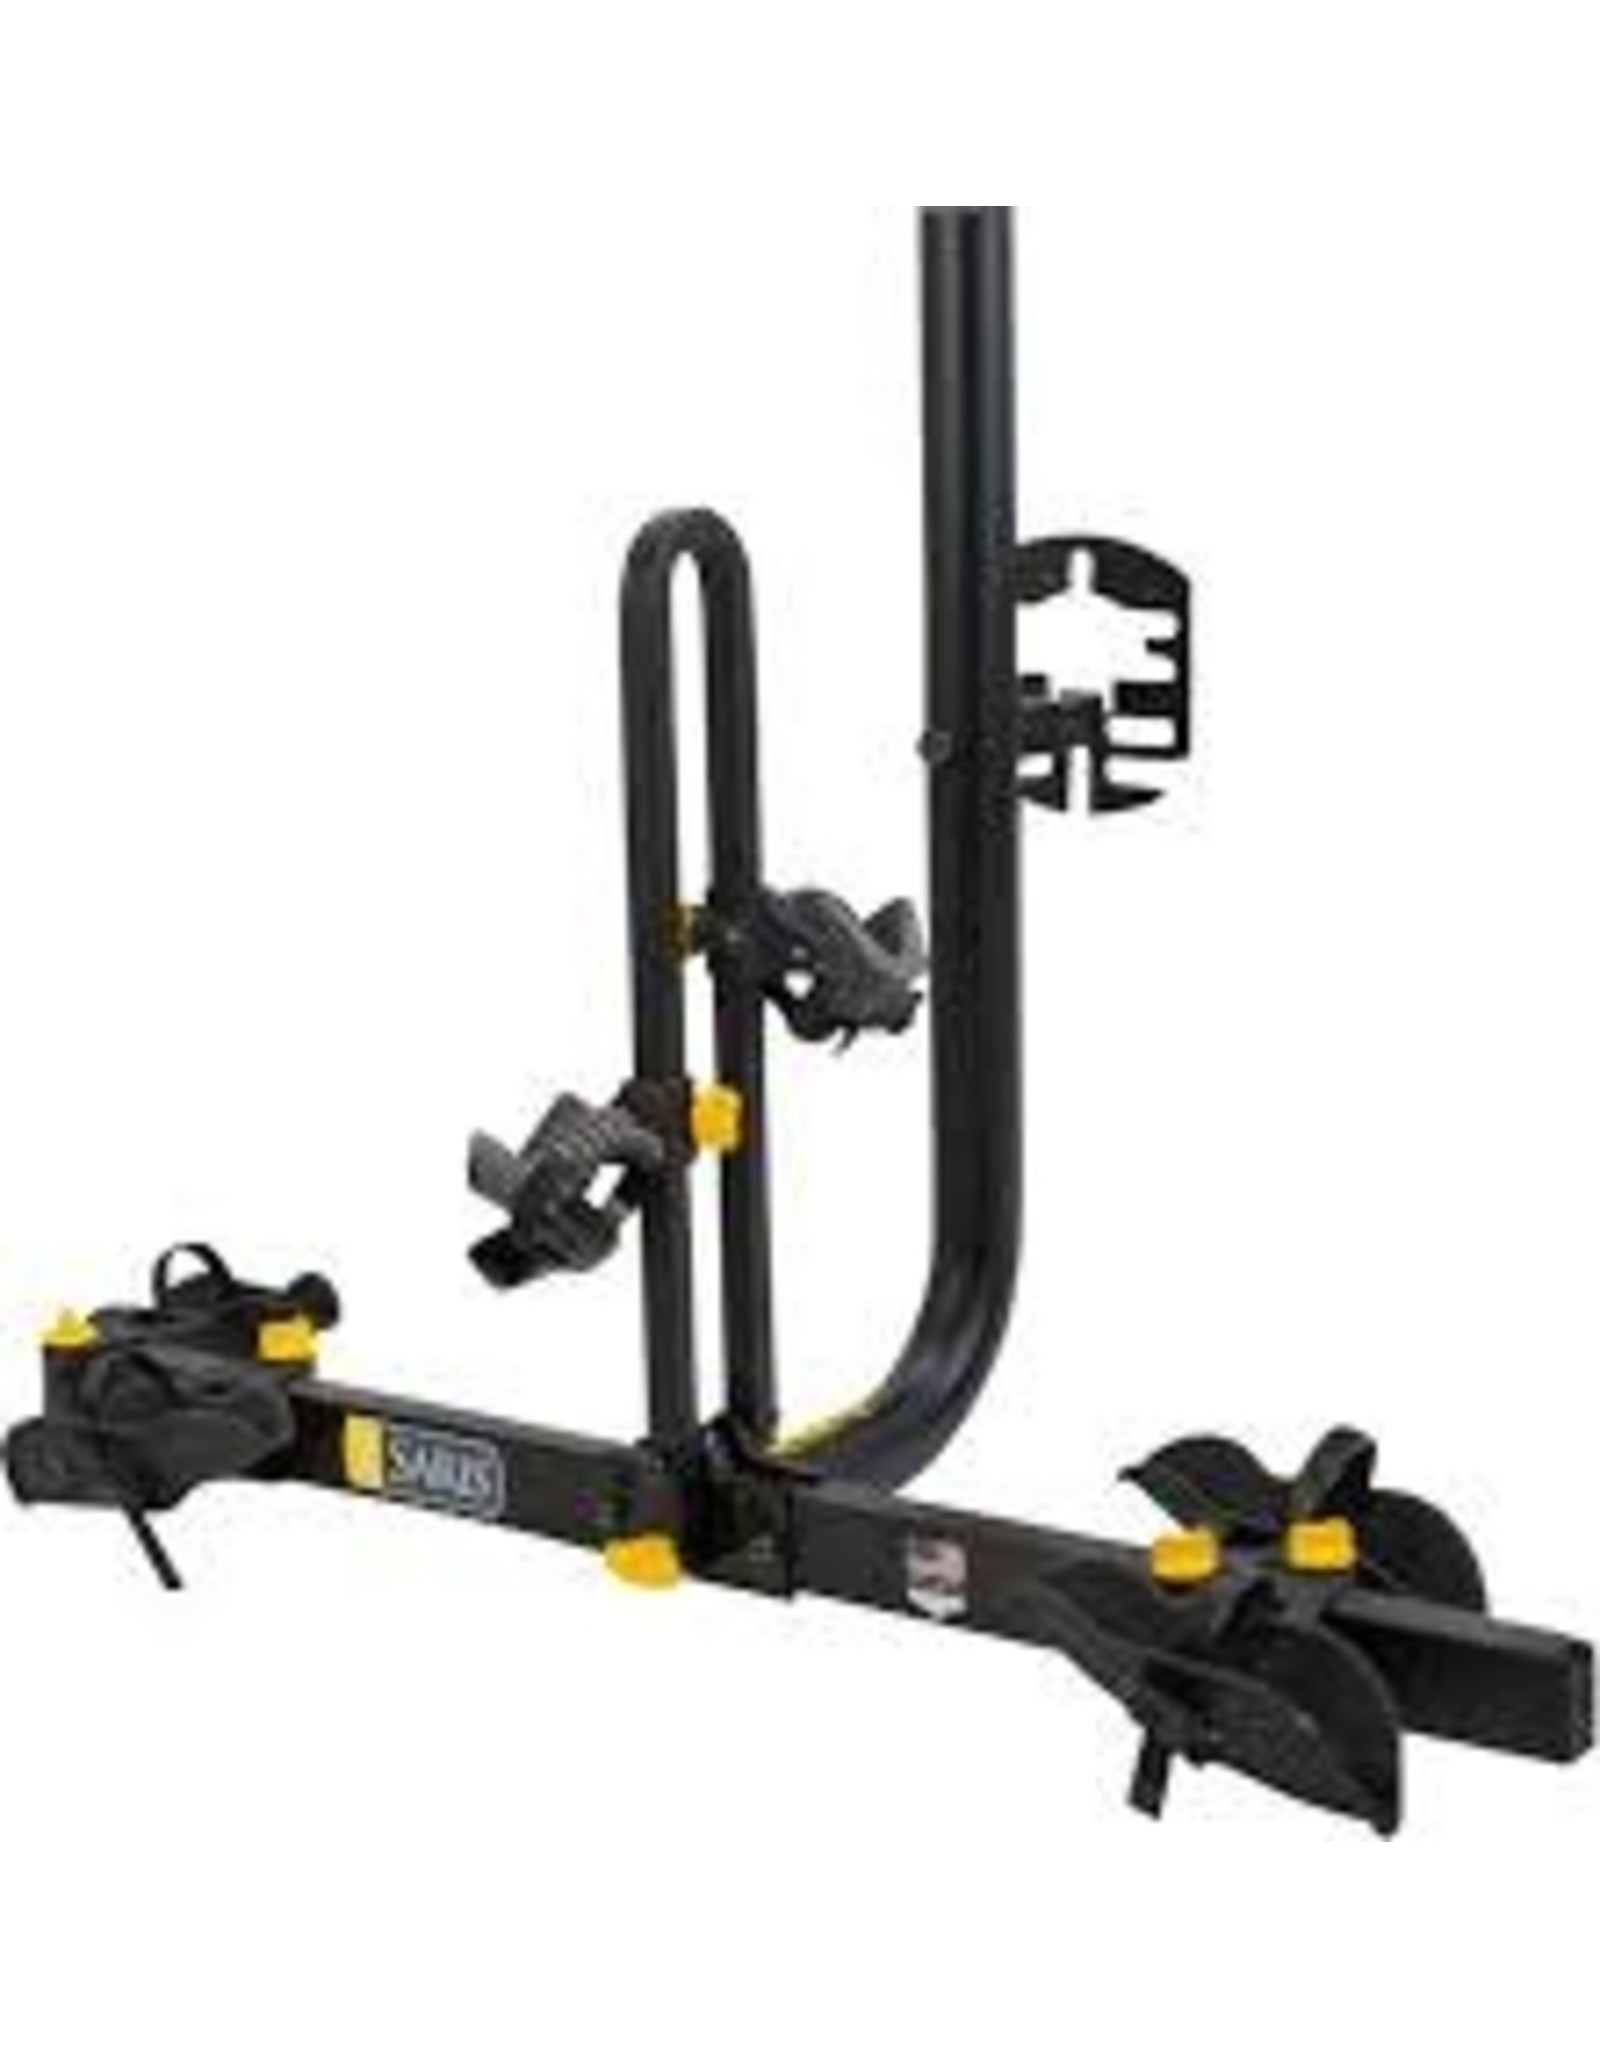 Saris, Freedom Spare Tire, Spare tire mounted bike rack, 2 bikes, Black